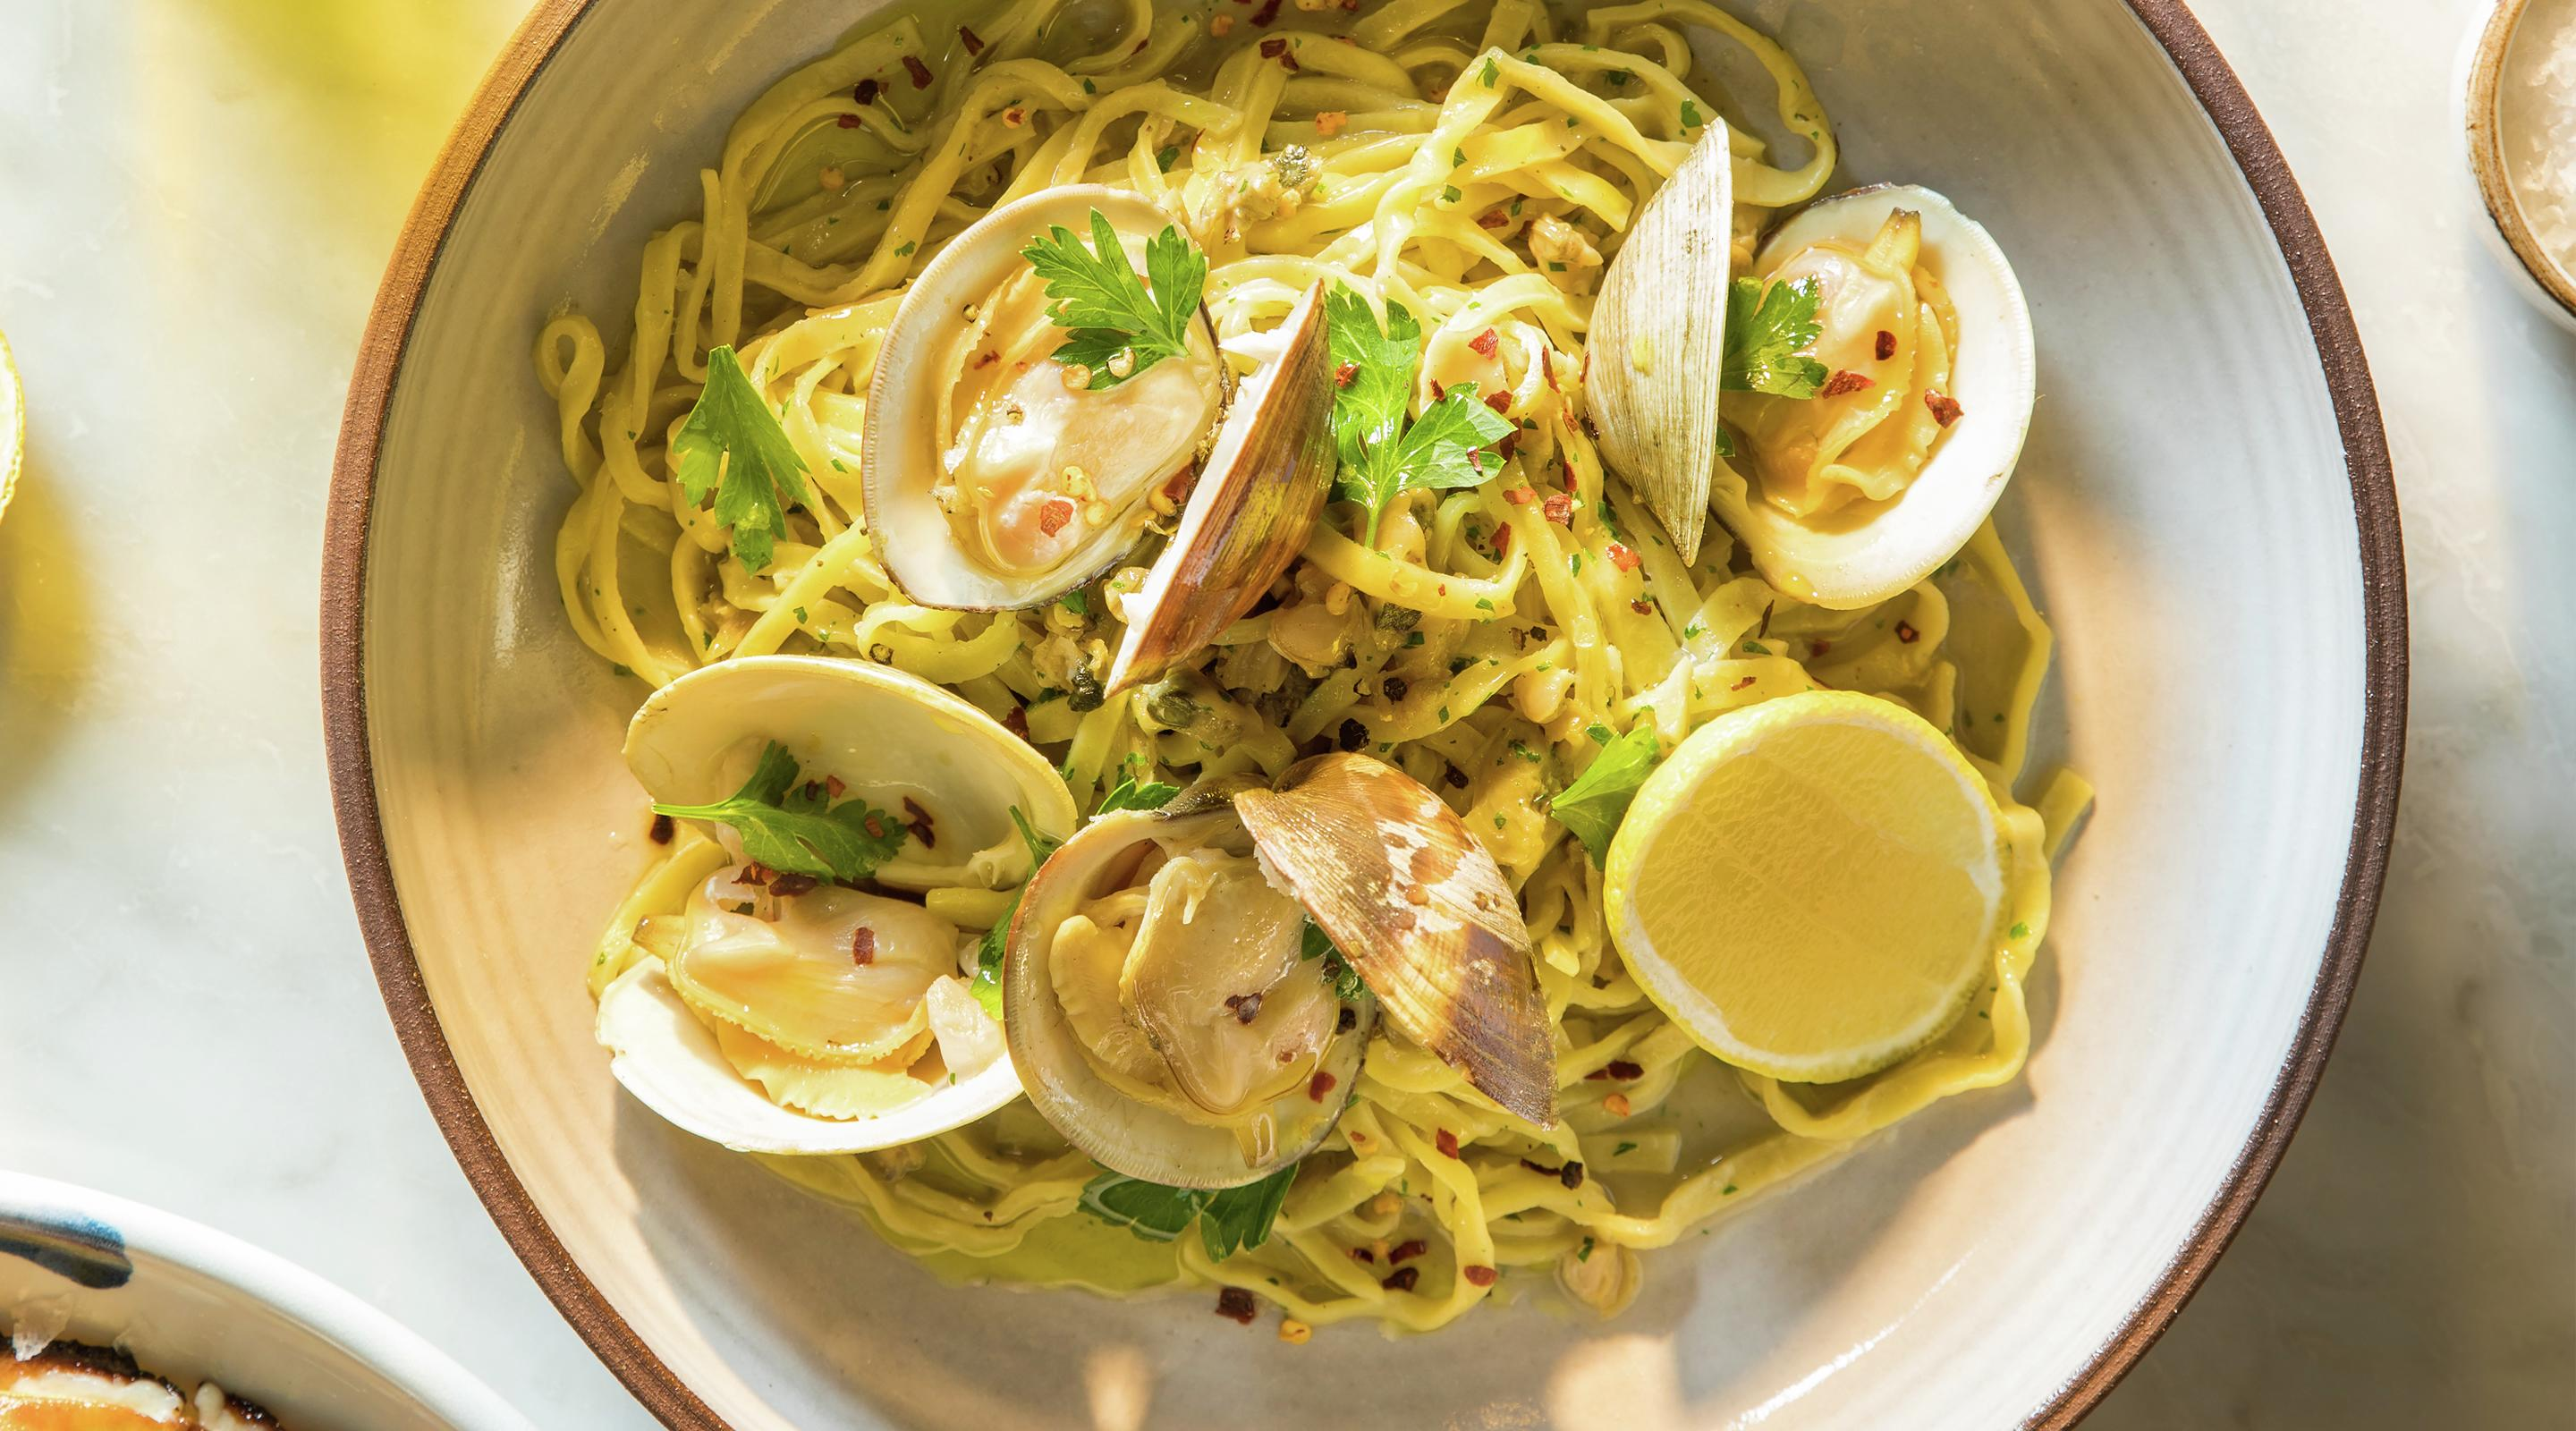 A linguine and clams dish at Osteria Costa in the Mirage.